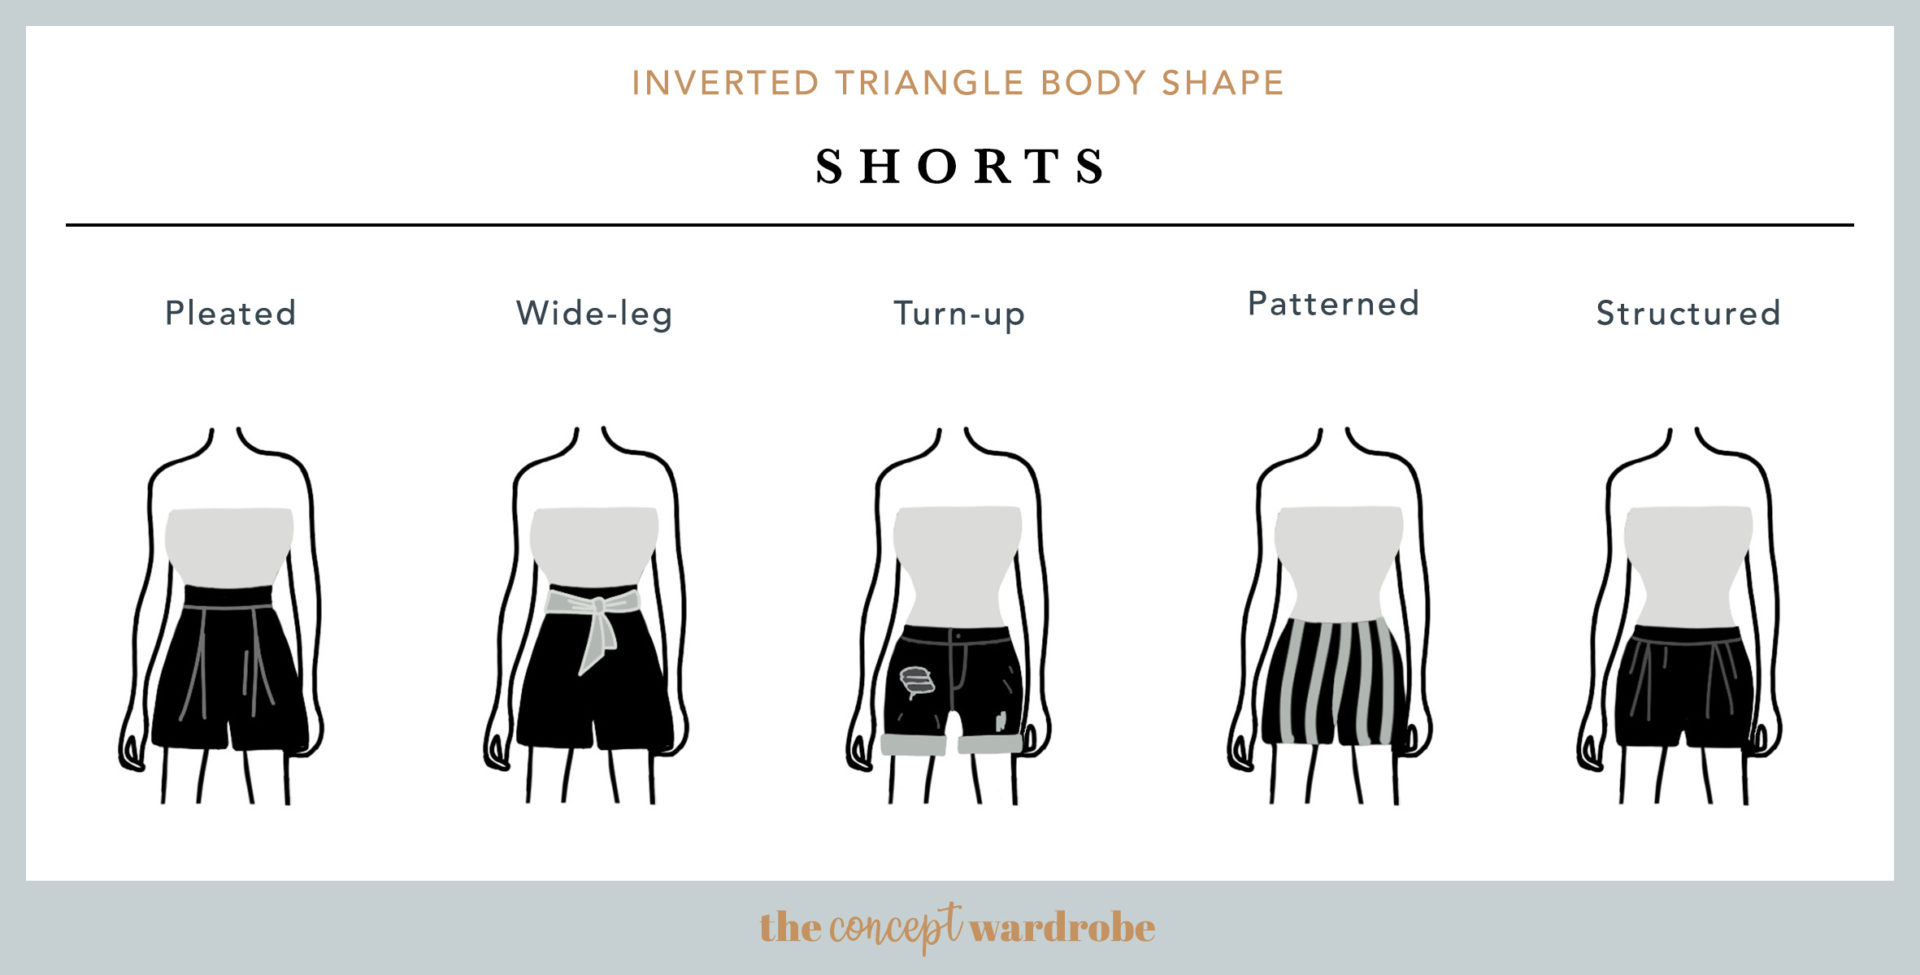 Inverted Triangle Body Shape Shorts - the concept wardrobe